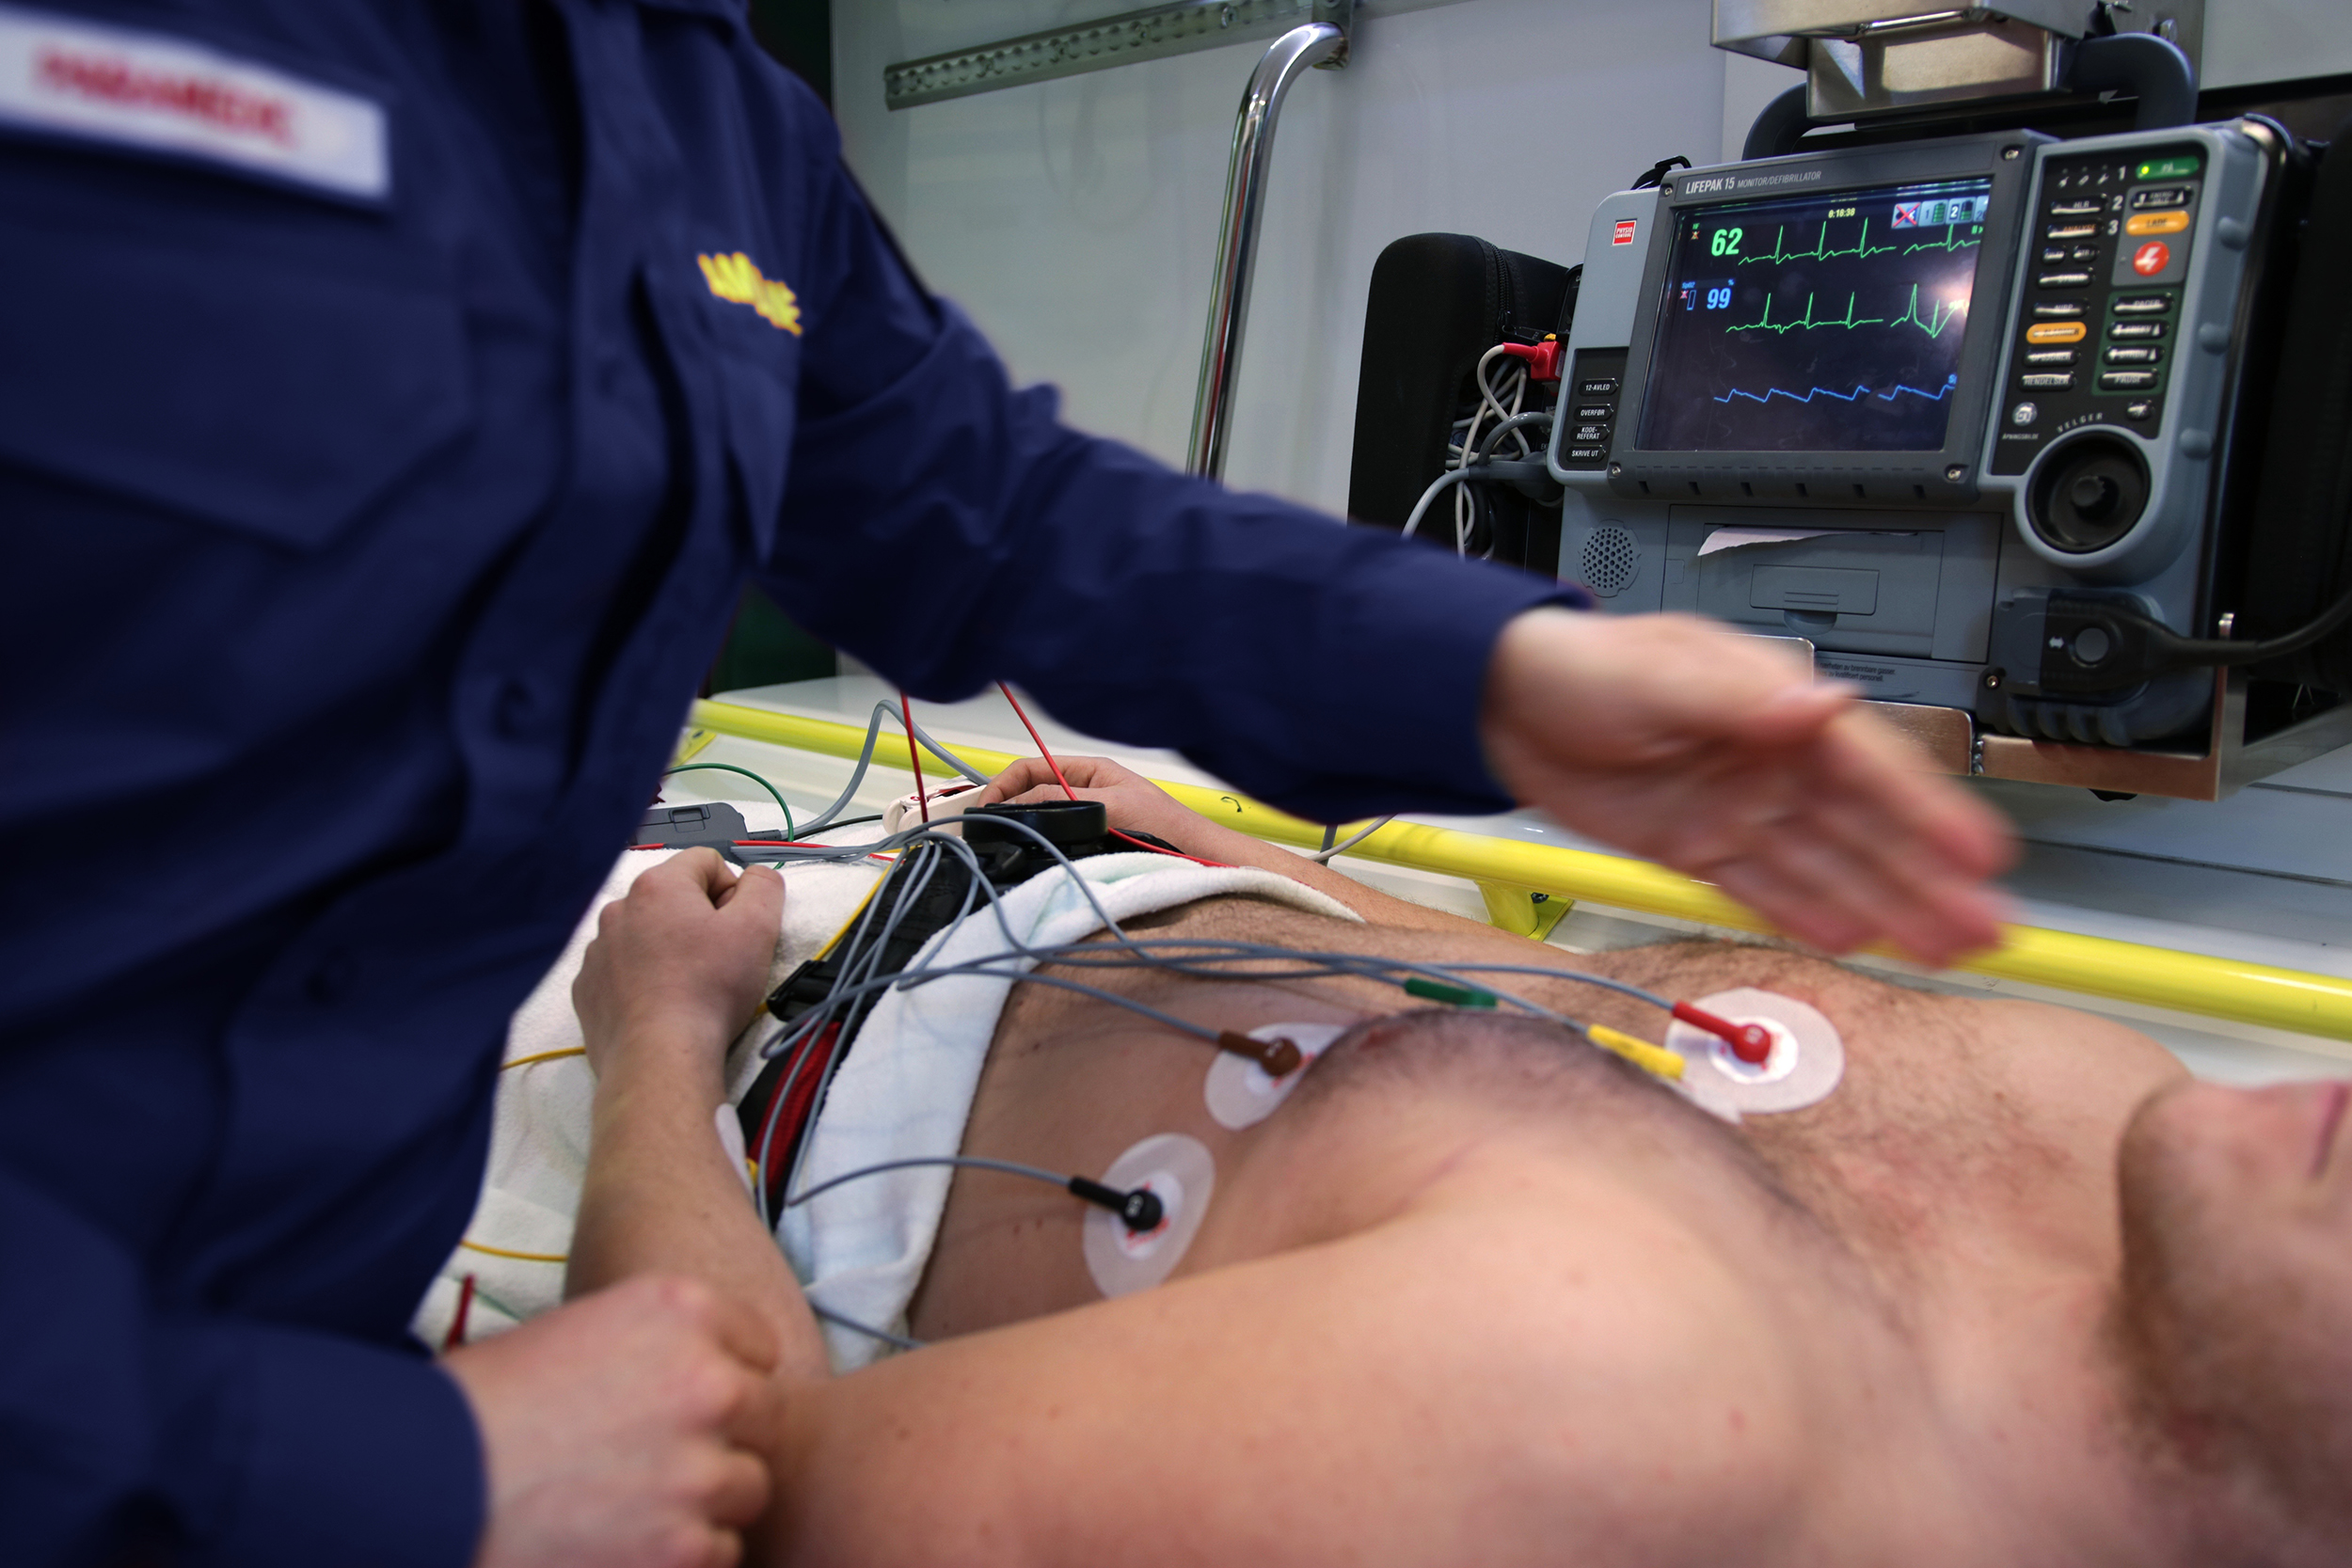 EMT measures the heart rate of a patient